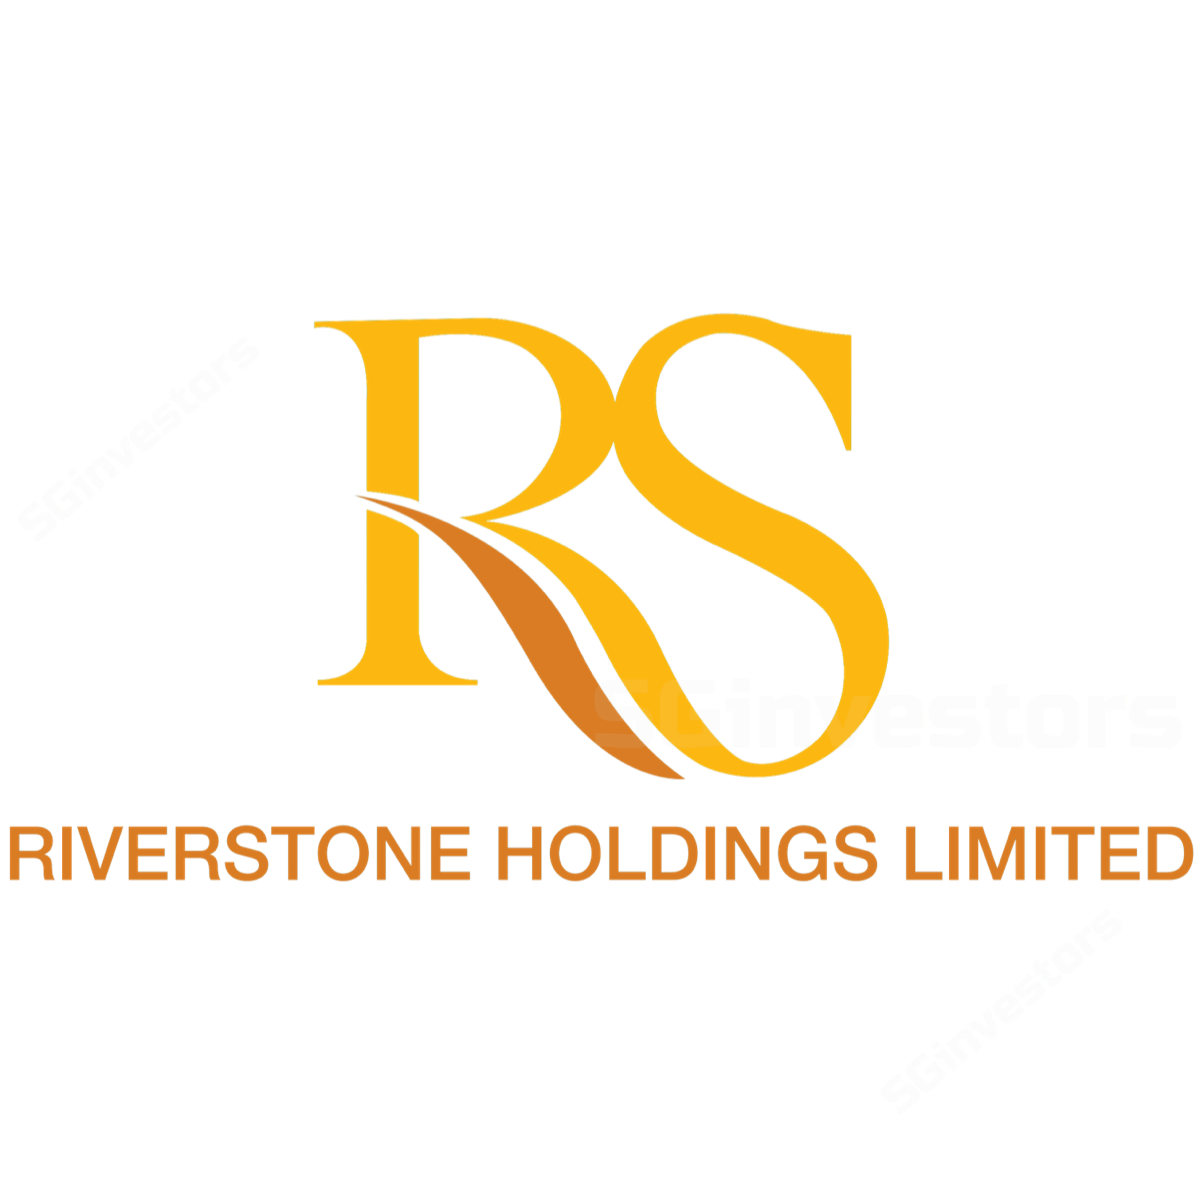 Riverstone Holdings - CIMB Research 2016-11-10: Expect a stronger 4Q